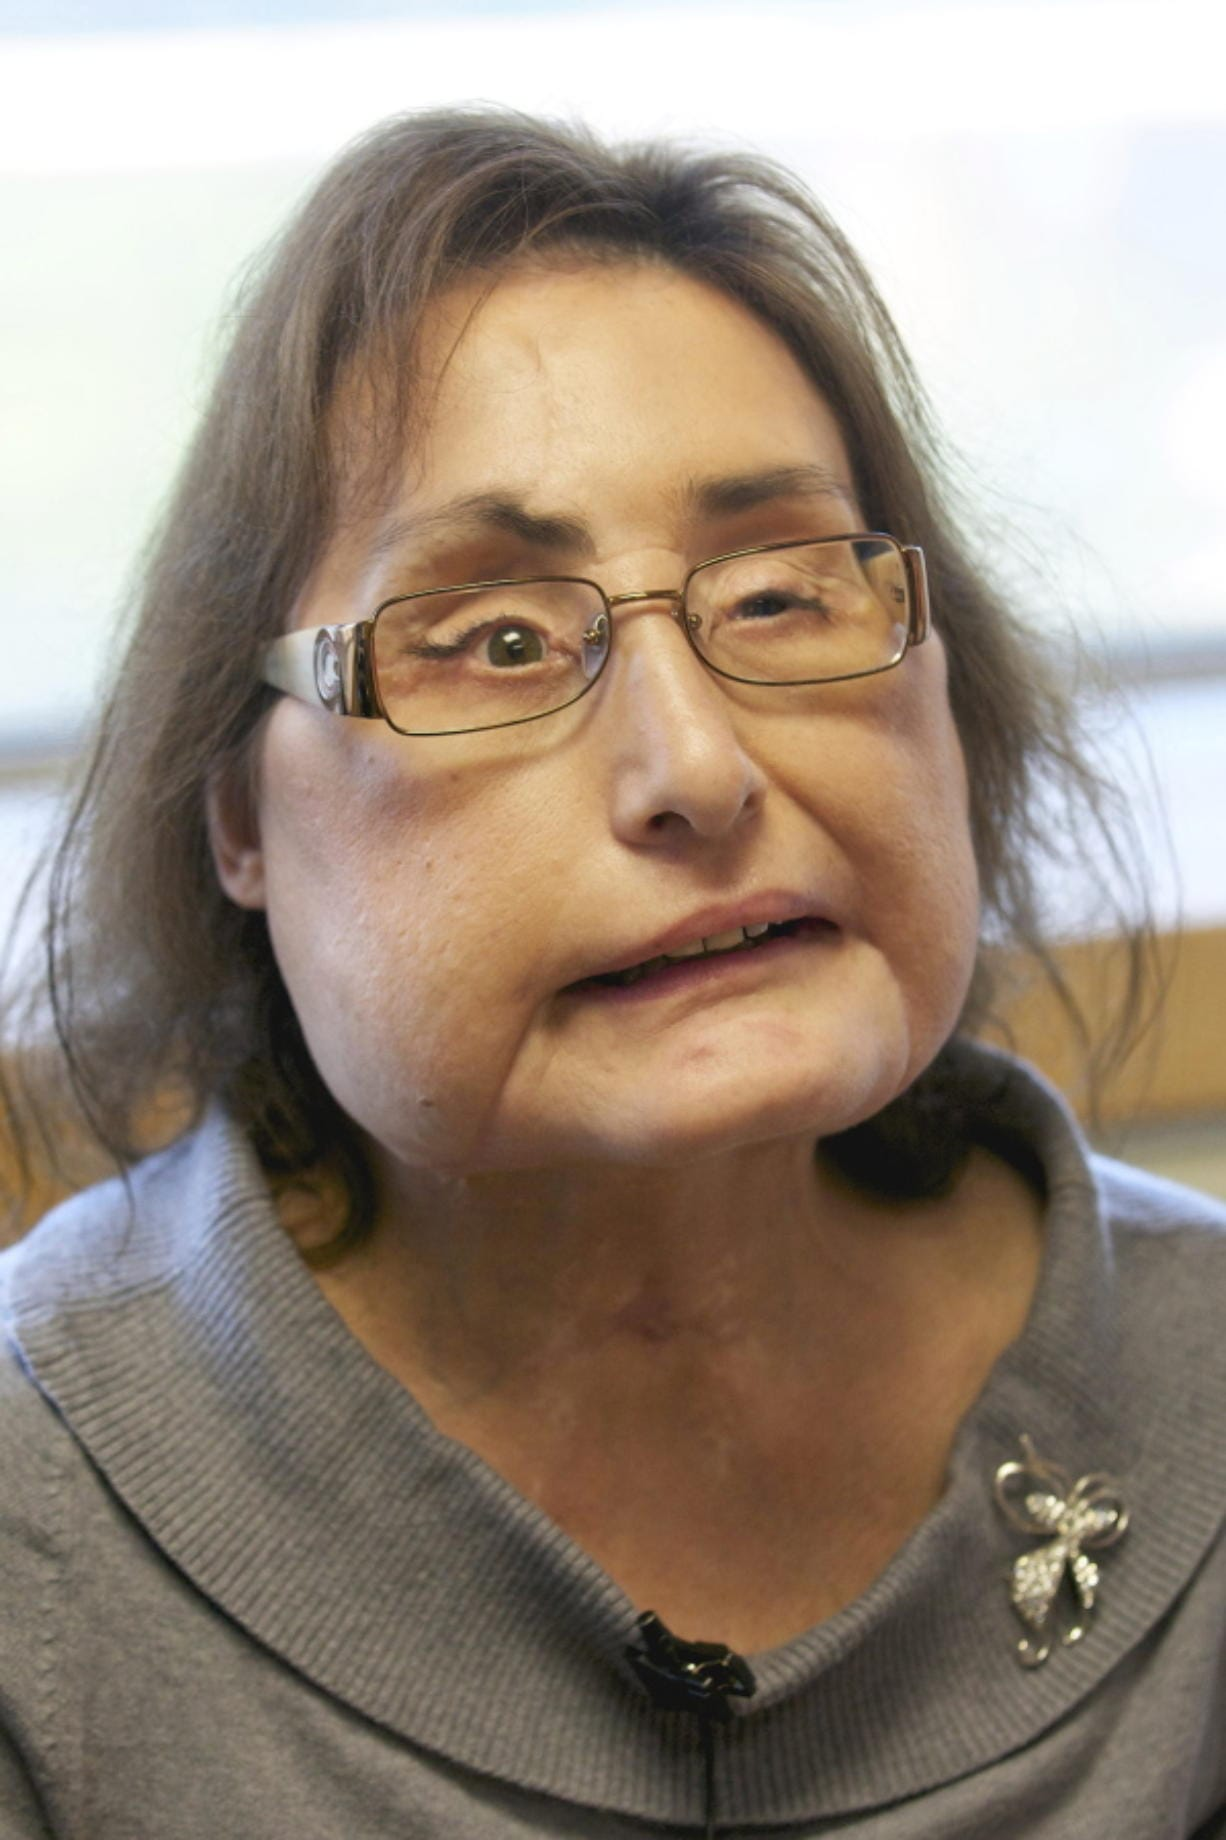 Connie Culp, the nation's first partial face transplant recipient, speaks Sept. 14, 2010 with the Associated Press at the Cleveland Clinic in Cleveland.